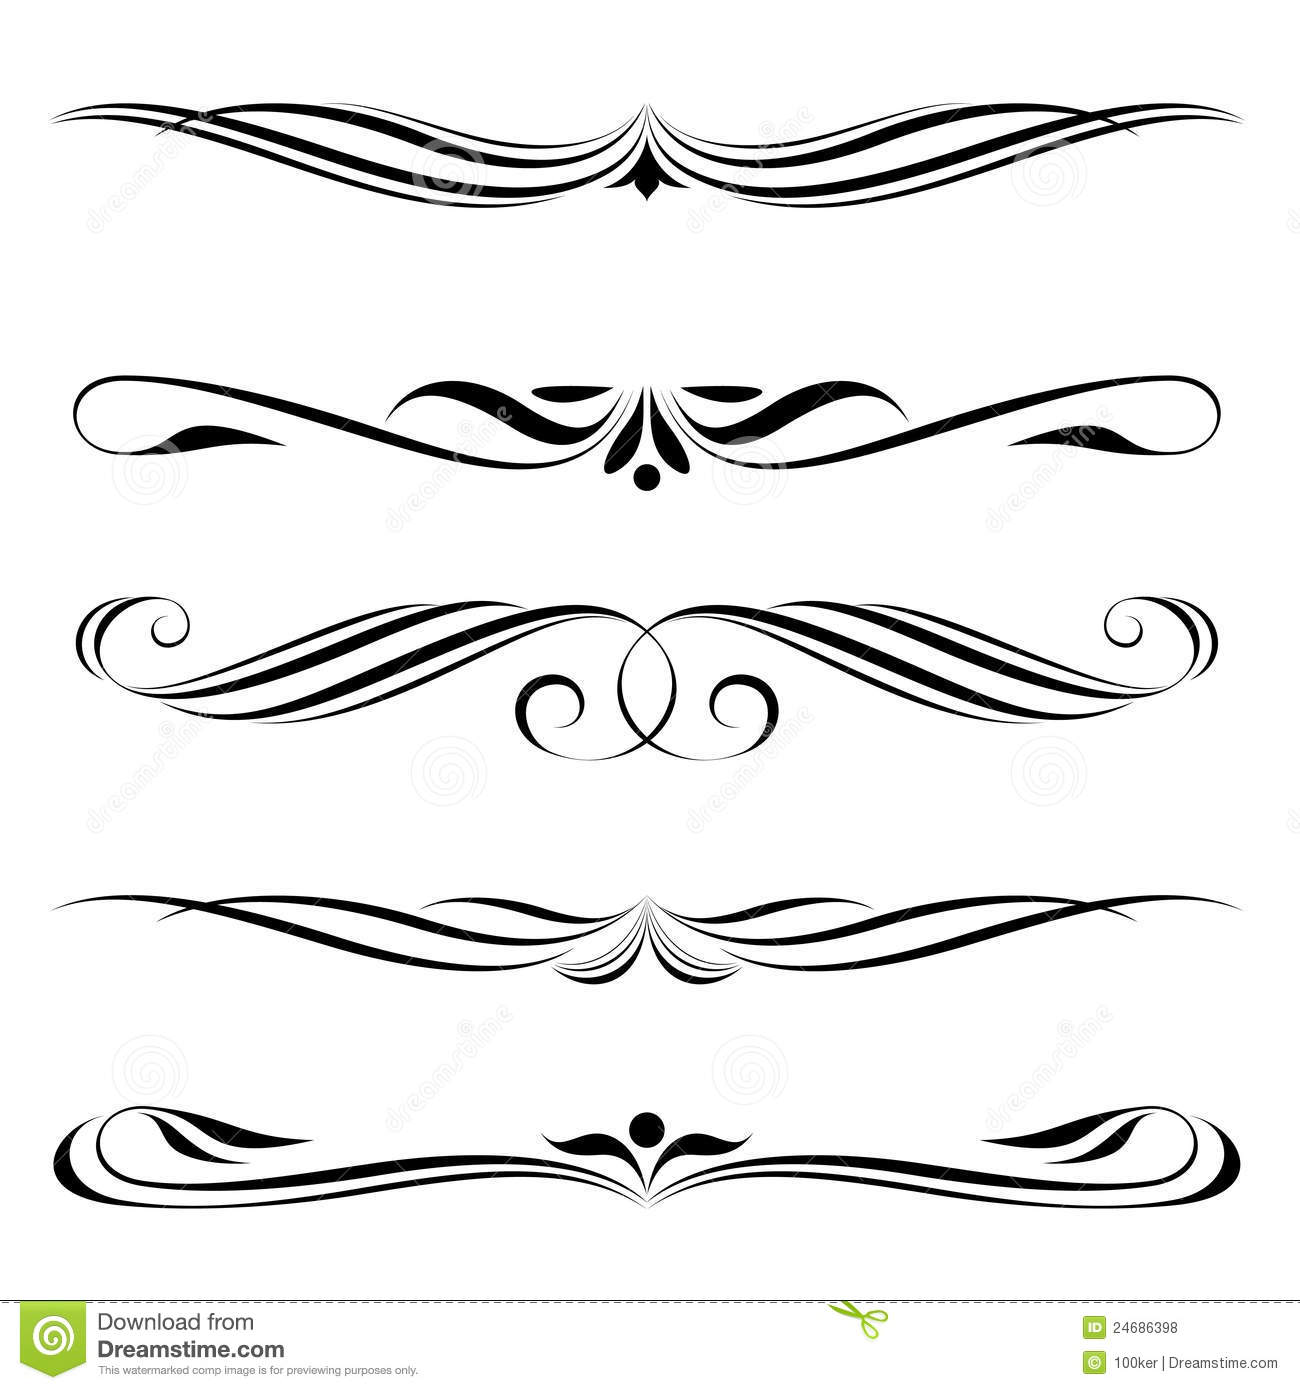 Decorative elements border and page rules royalty free for Decoration elements